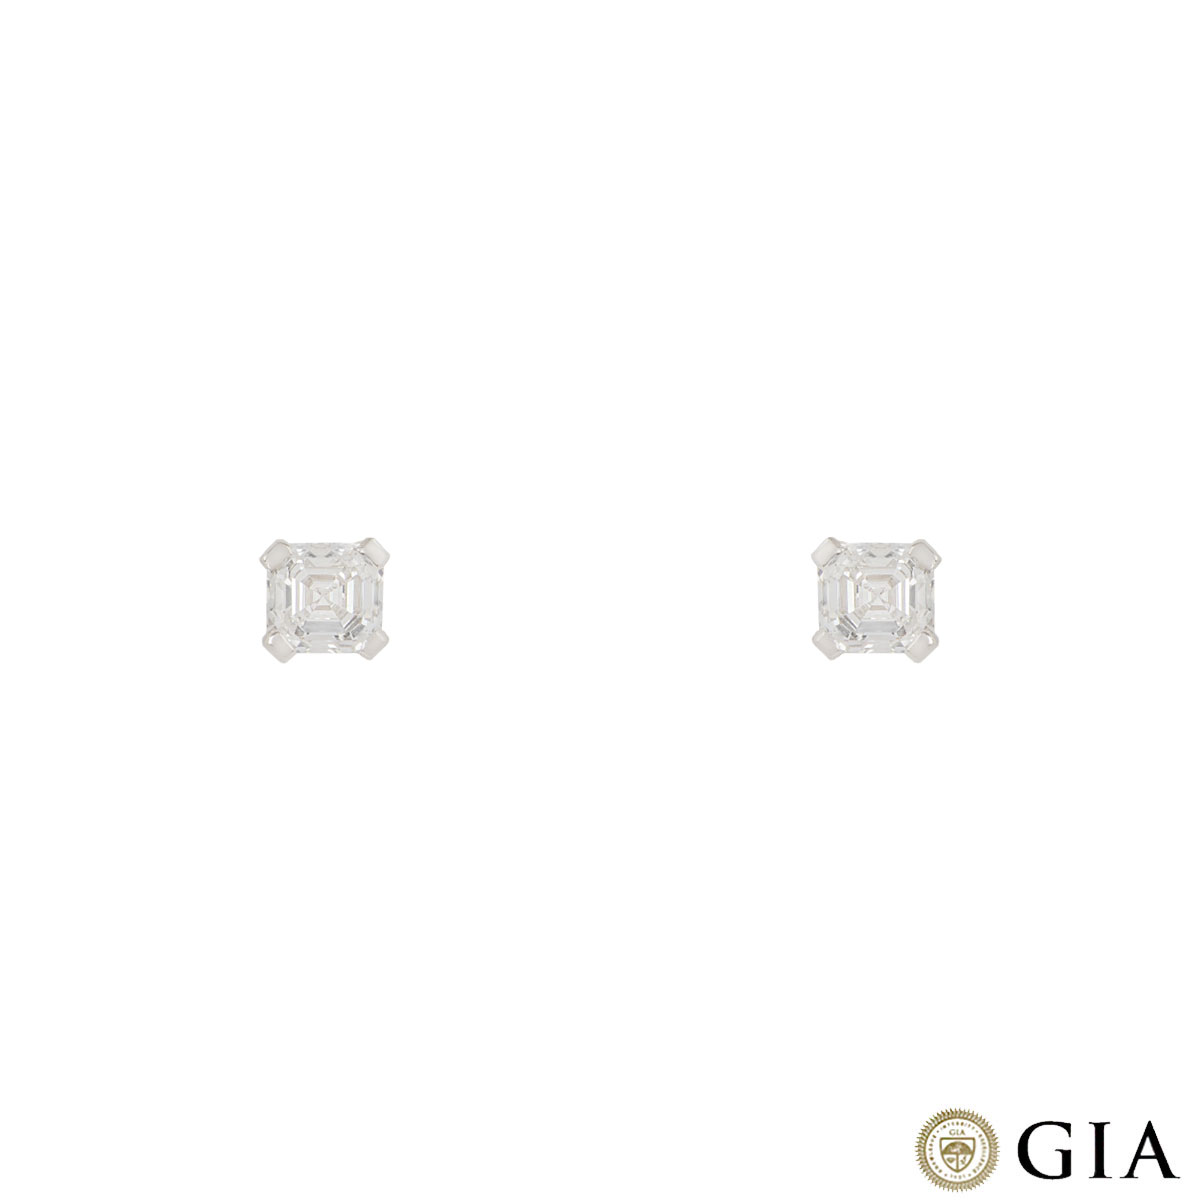 Asscher Cut Platinum Diamond Earrings 1.00ct G/VVS2